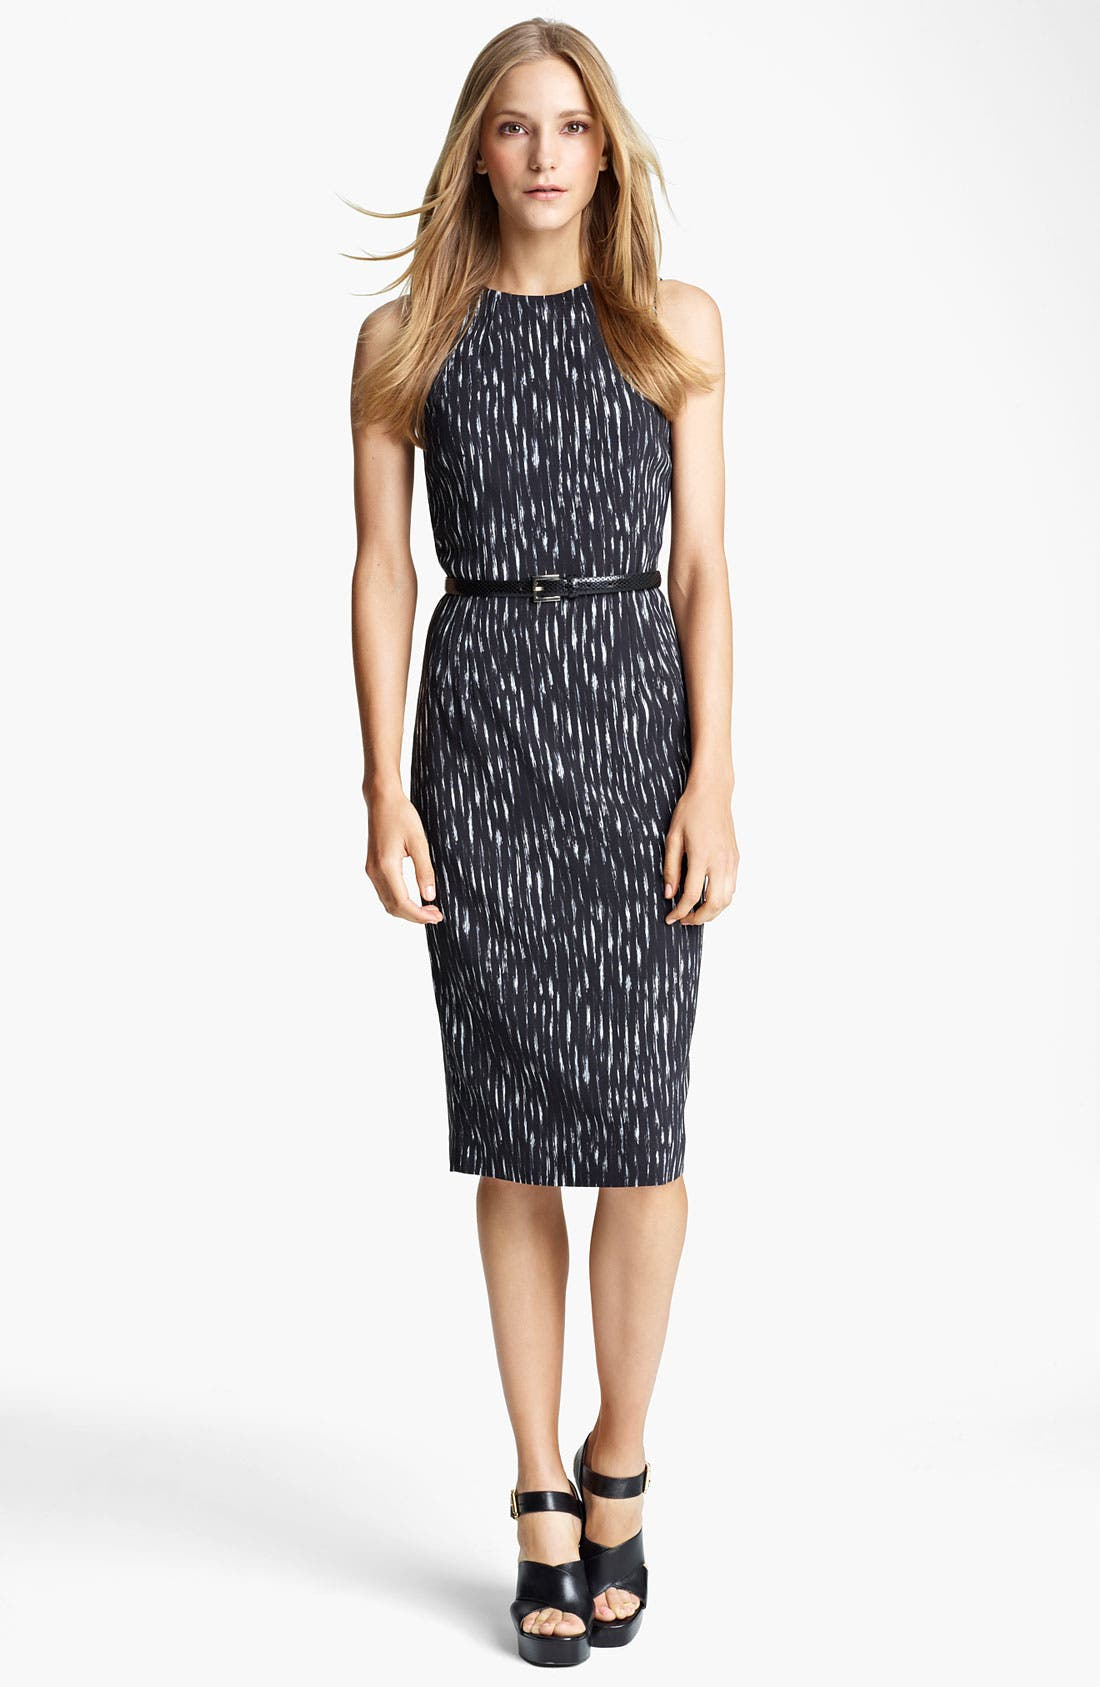 Alternate Image 1 Selected - Michael Kors Ikat Print Cady Sheath Dress